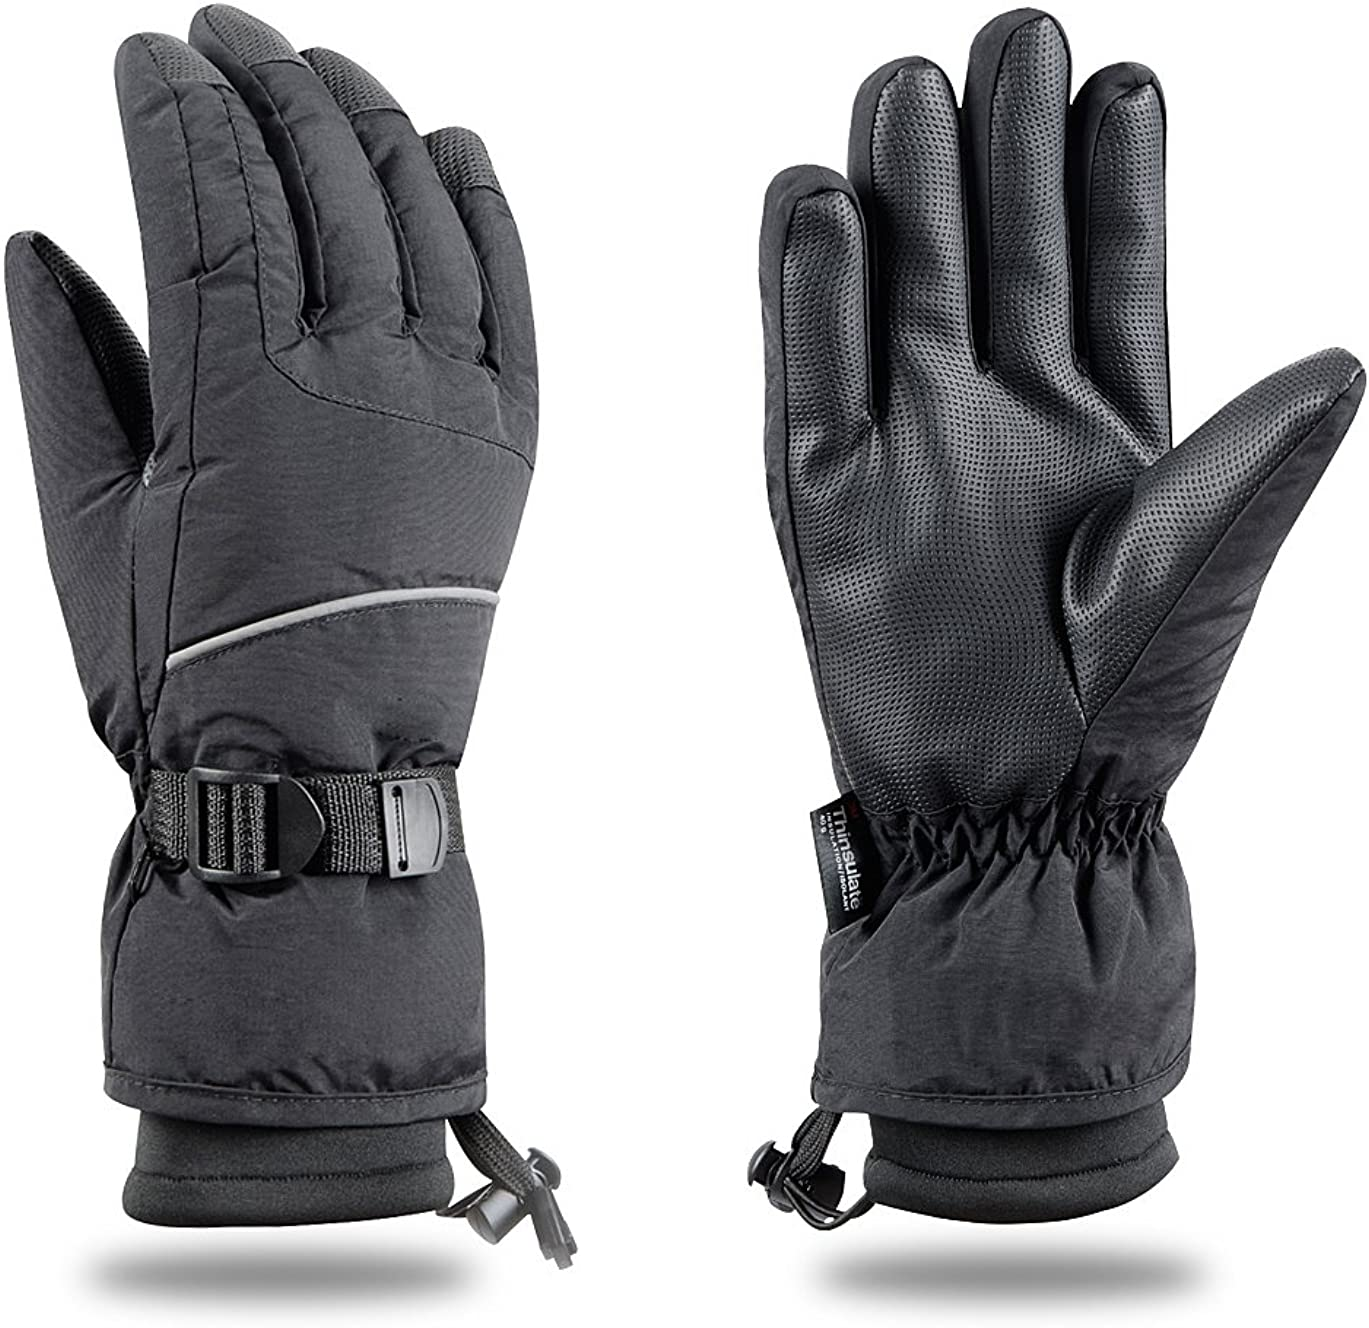 Black Ski Gloves Snowboard Snowmobile Waterproof Windproof  3M Thinsulate Winter Warm Snow Cold Gloves Large